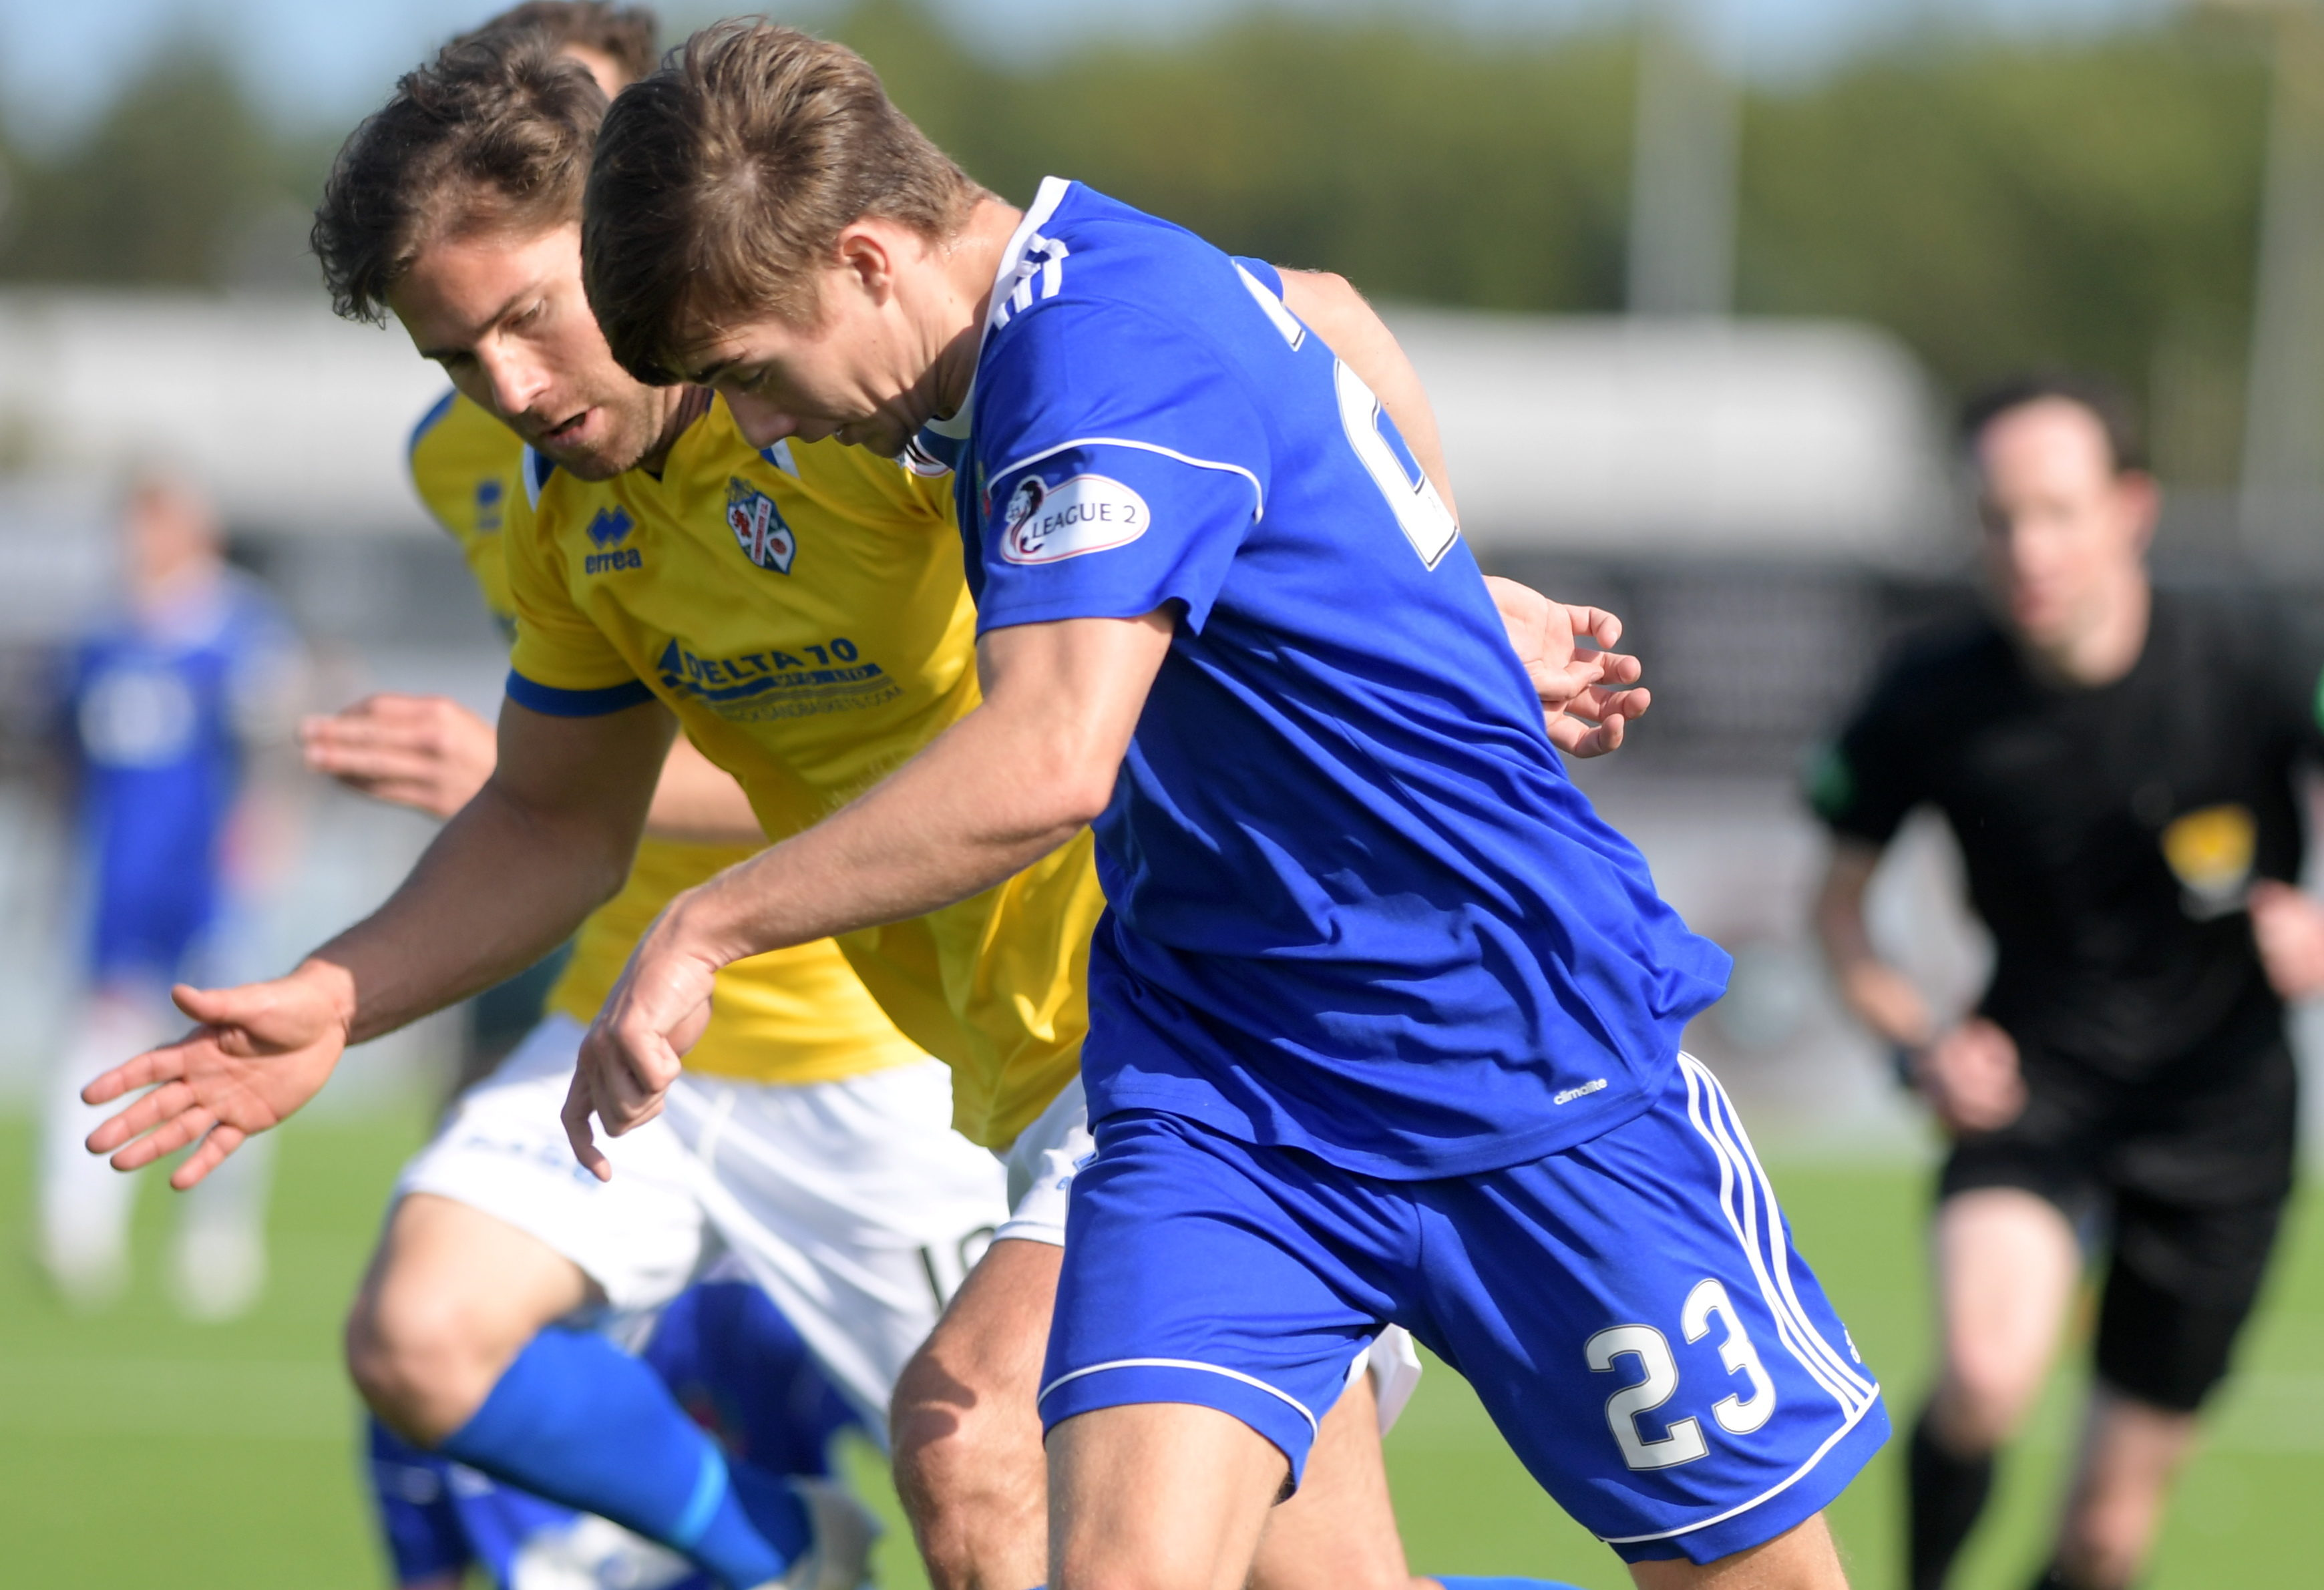 Cove's Matthew Smith. Picture by Kath Flannery